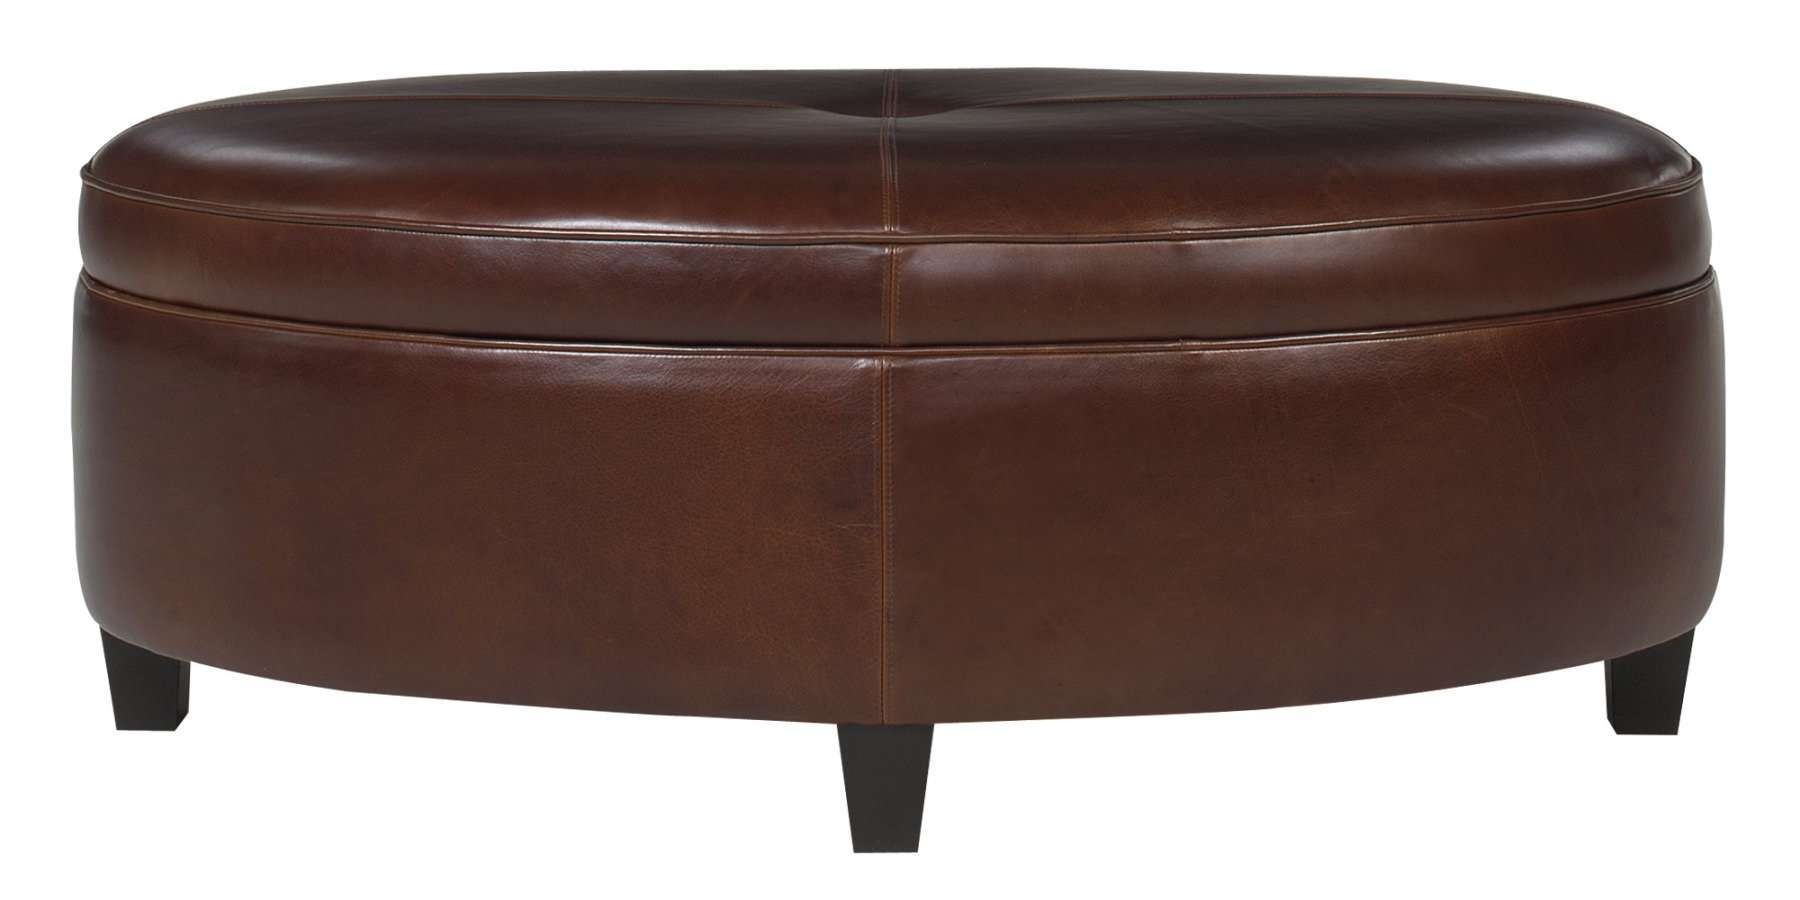 Brown Leather Coffee Table Ottoman 2019 Popular Brown Leather Ottoman Coffee Tables With Storages